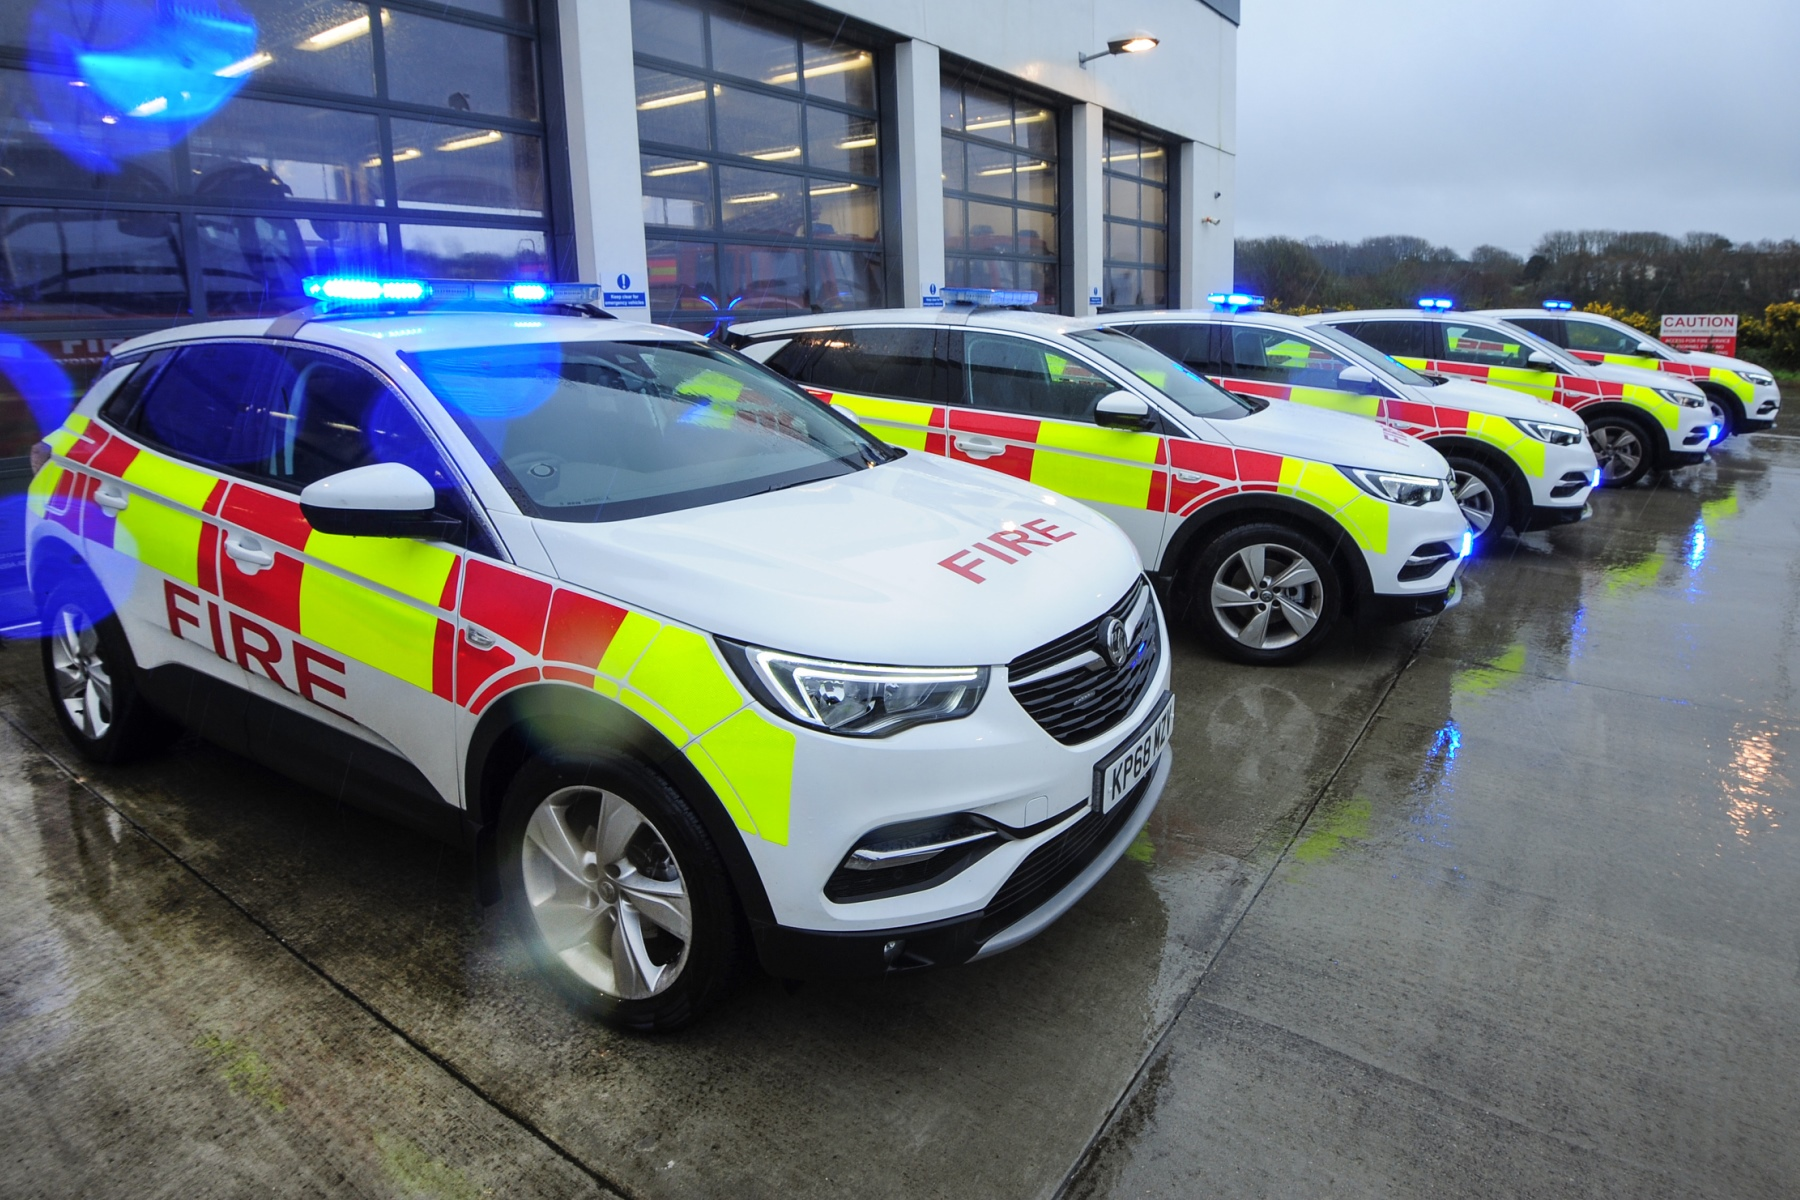 Cornwall Fire, Rescue and Community Safety's fleet of new Vauxhall Grand X vehicles